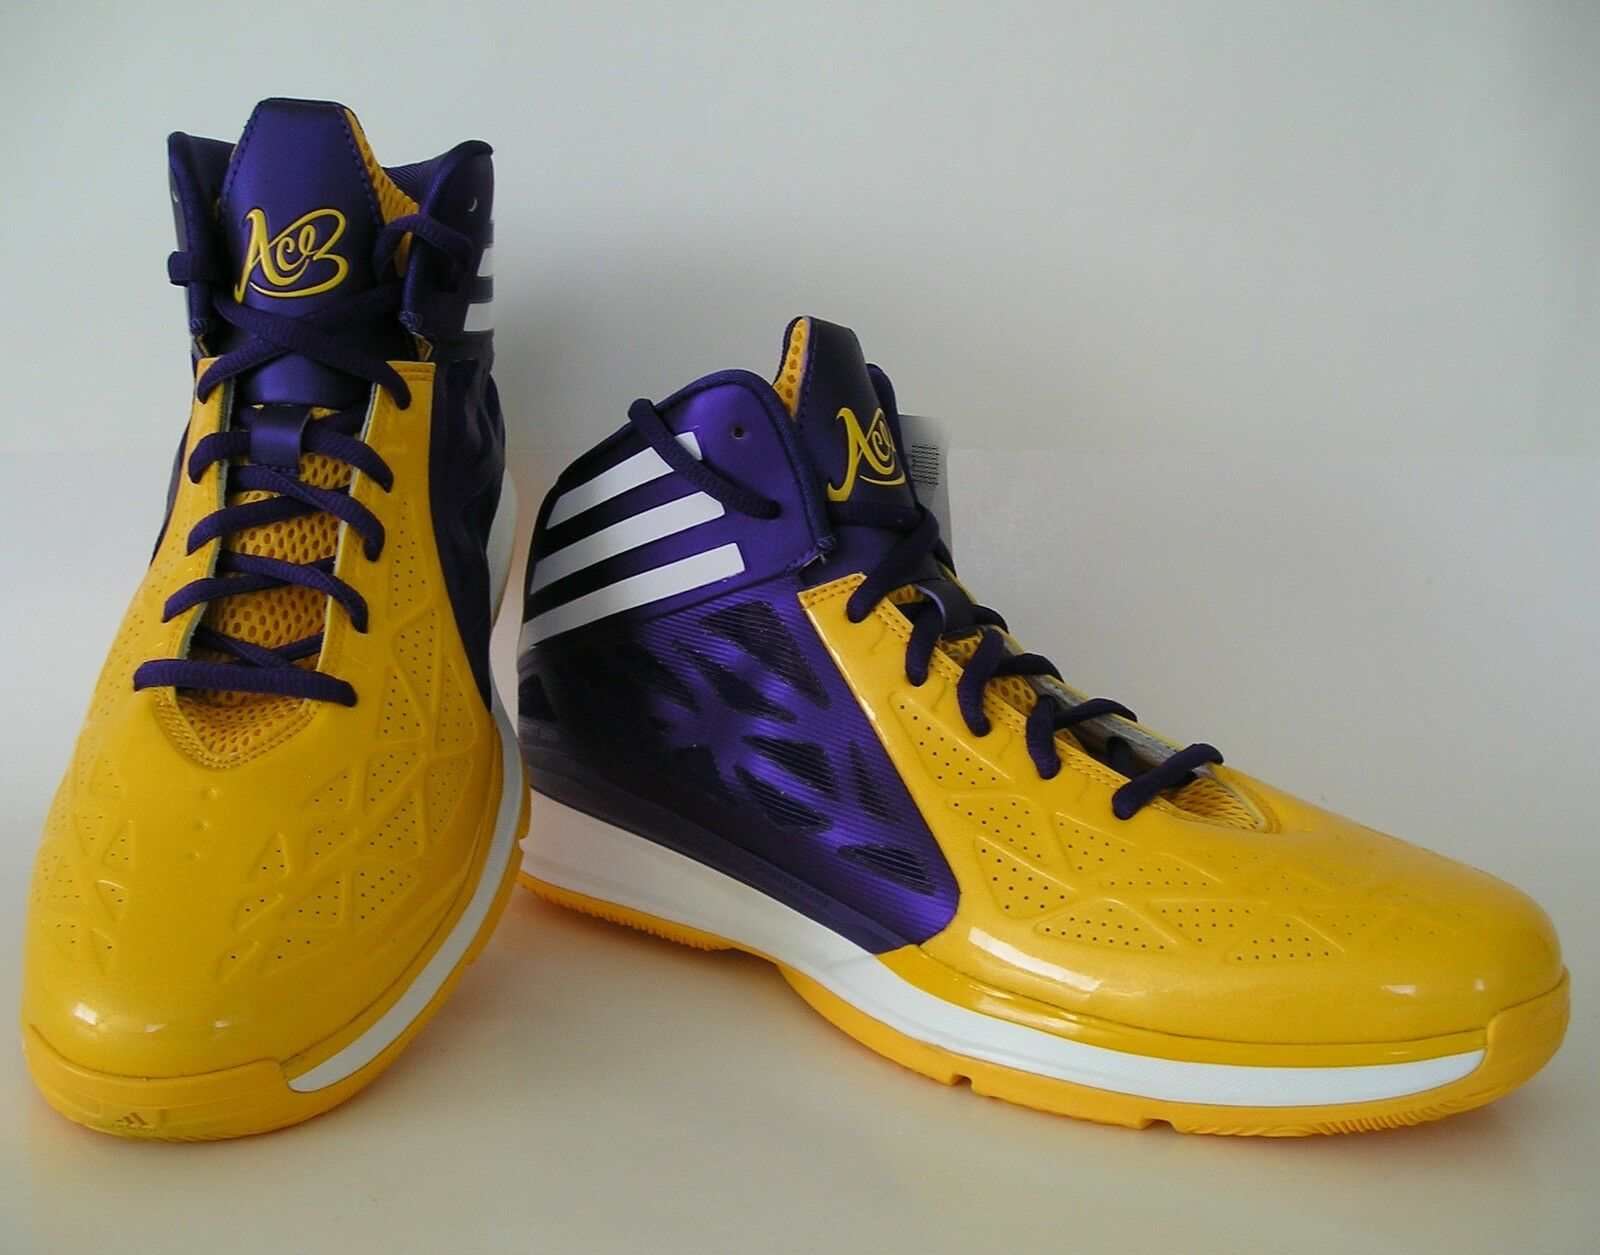 LIMITED ED~Adidas CRAZY FAST Basketball 2 ACE3 Candace Parker Basketball FAST qucik Shoe~Sz 12.5 acd278